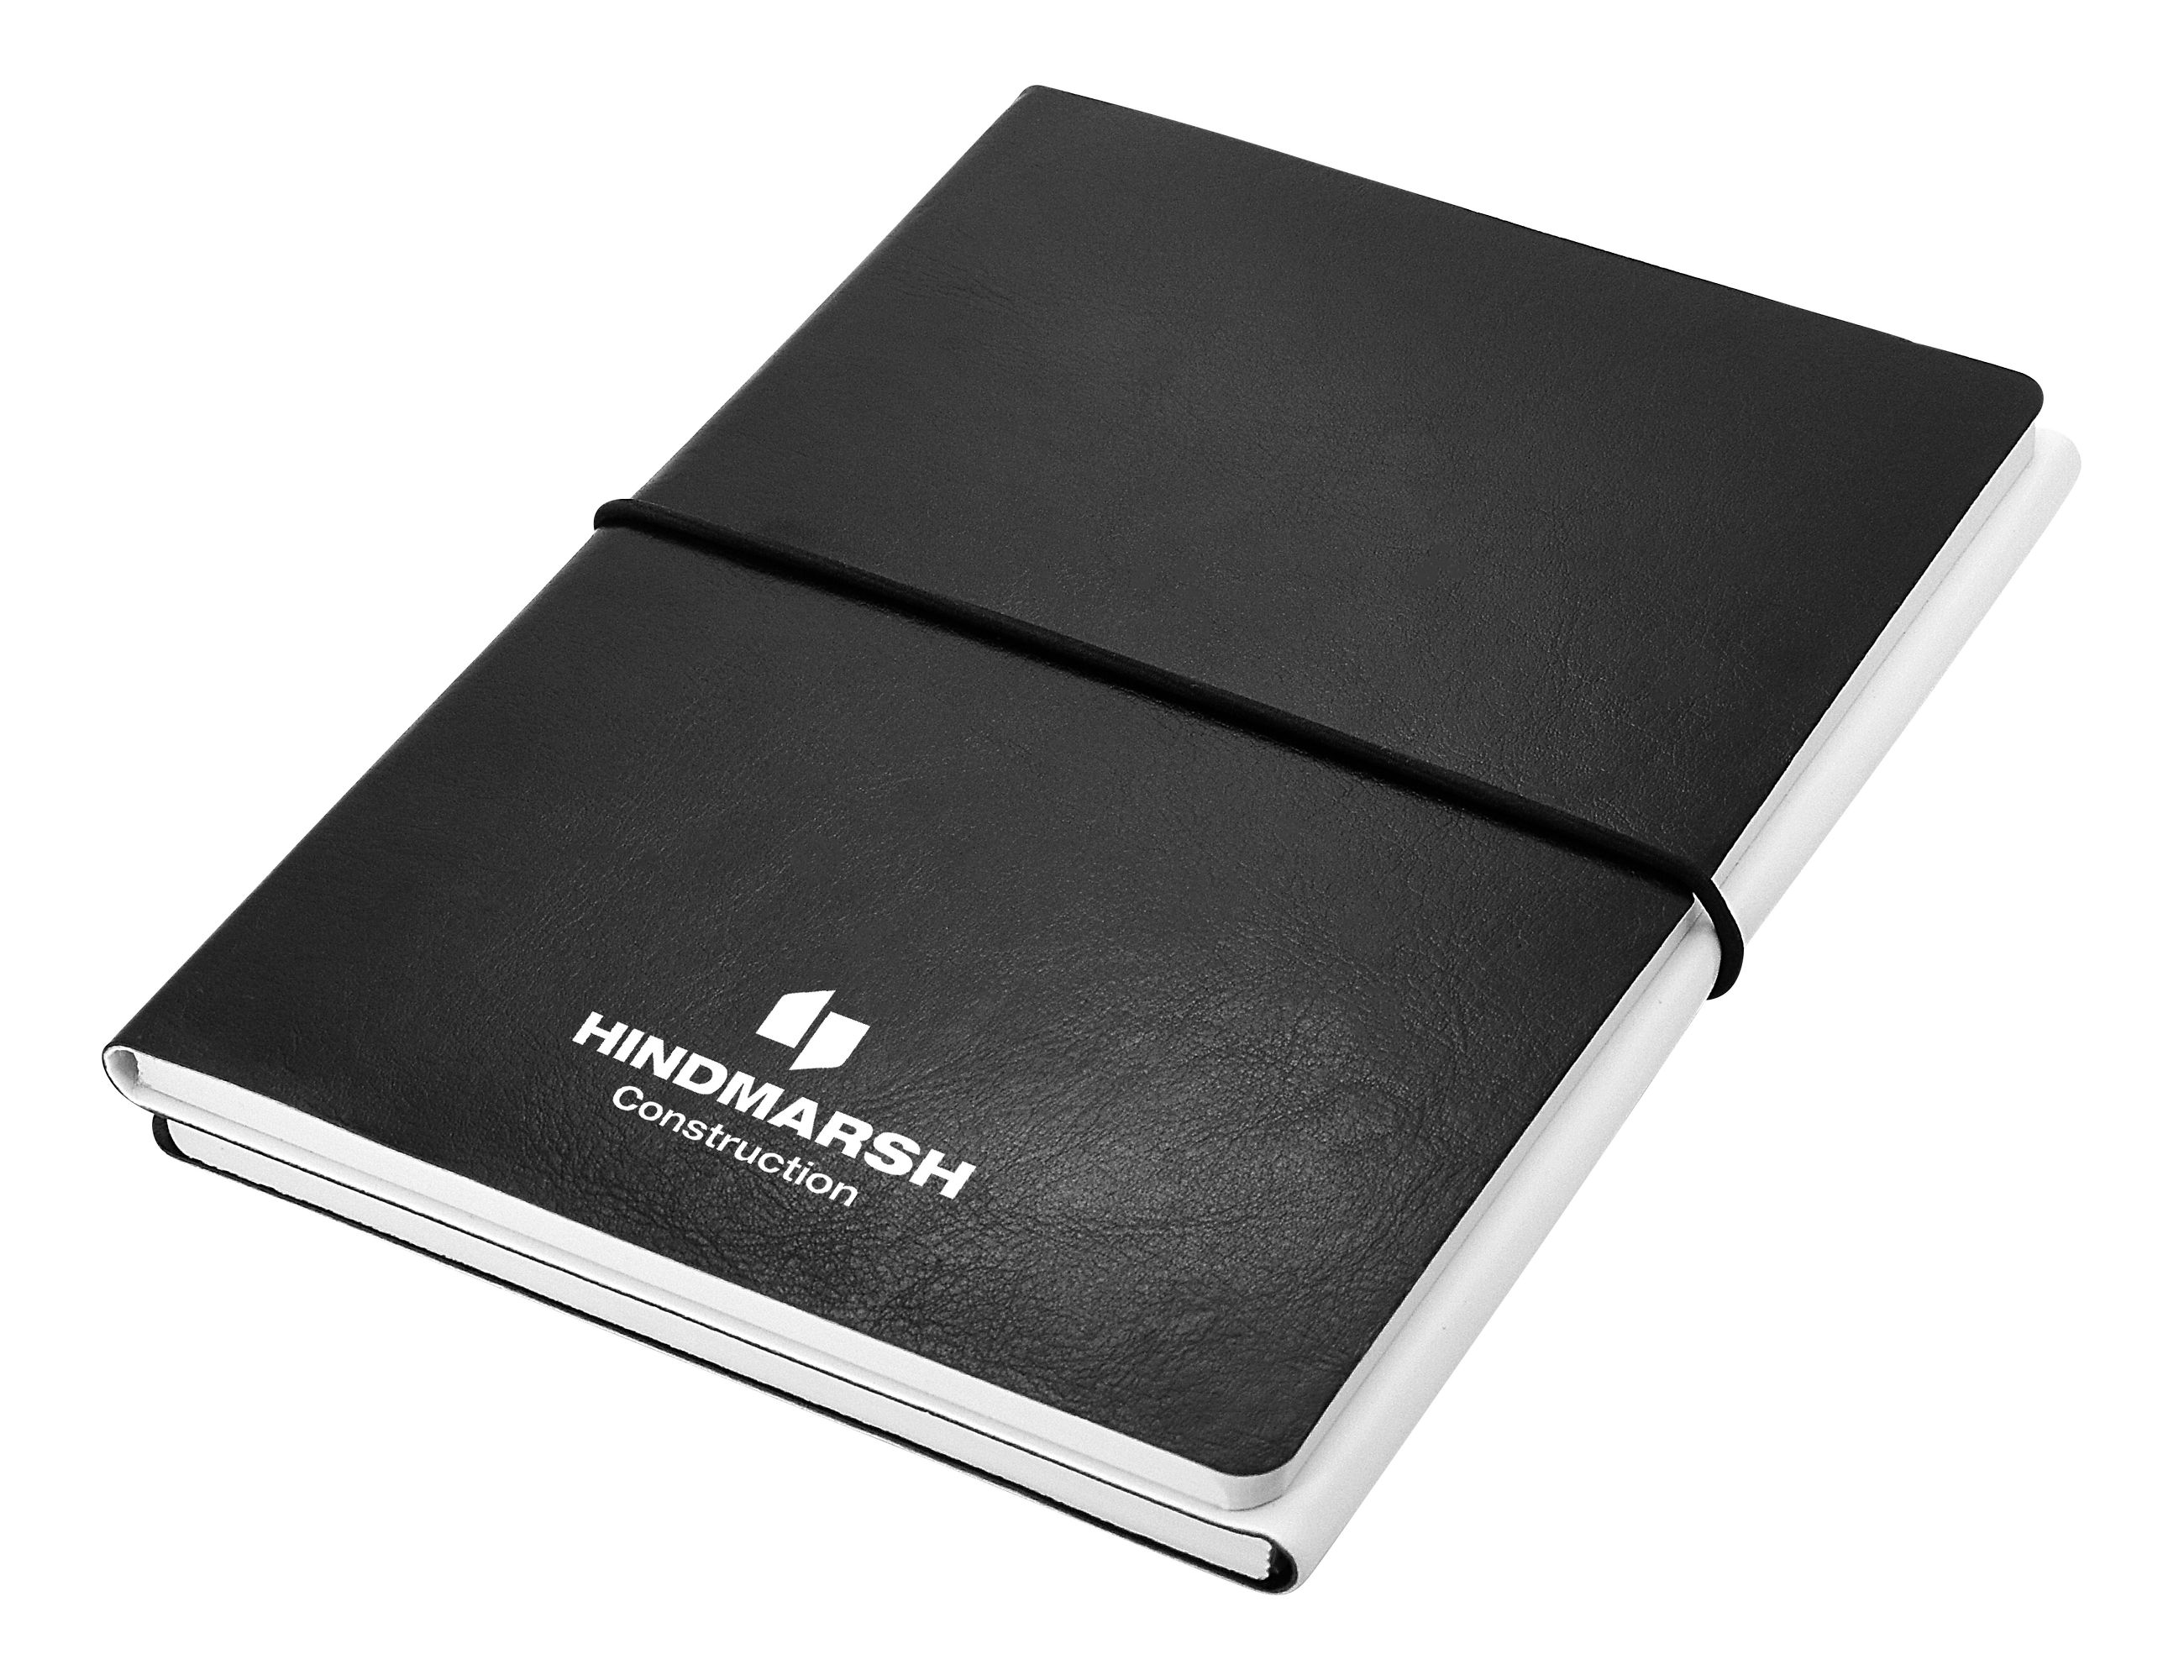 Promotional Product Two to Tango A5 Notebook, Black/White